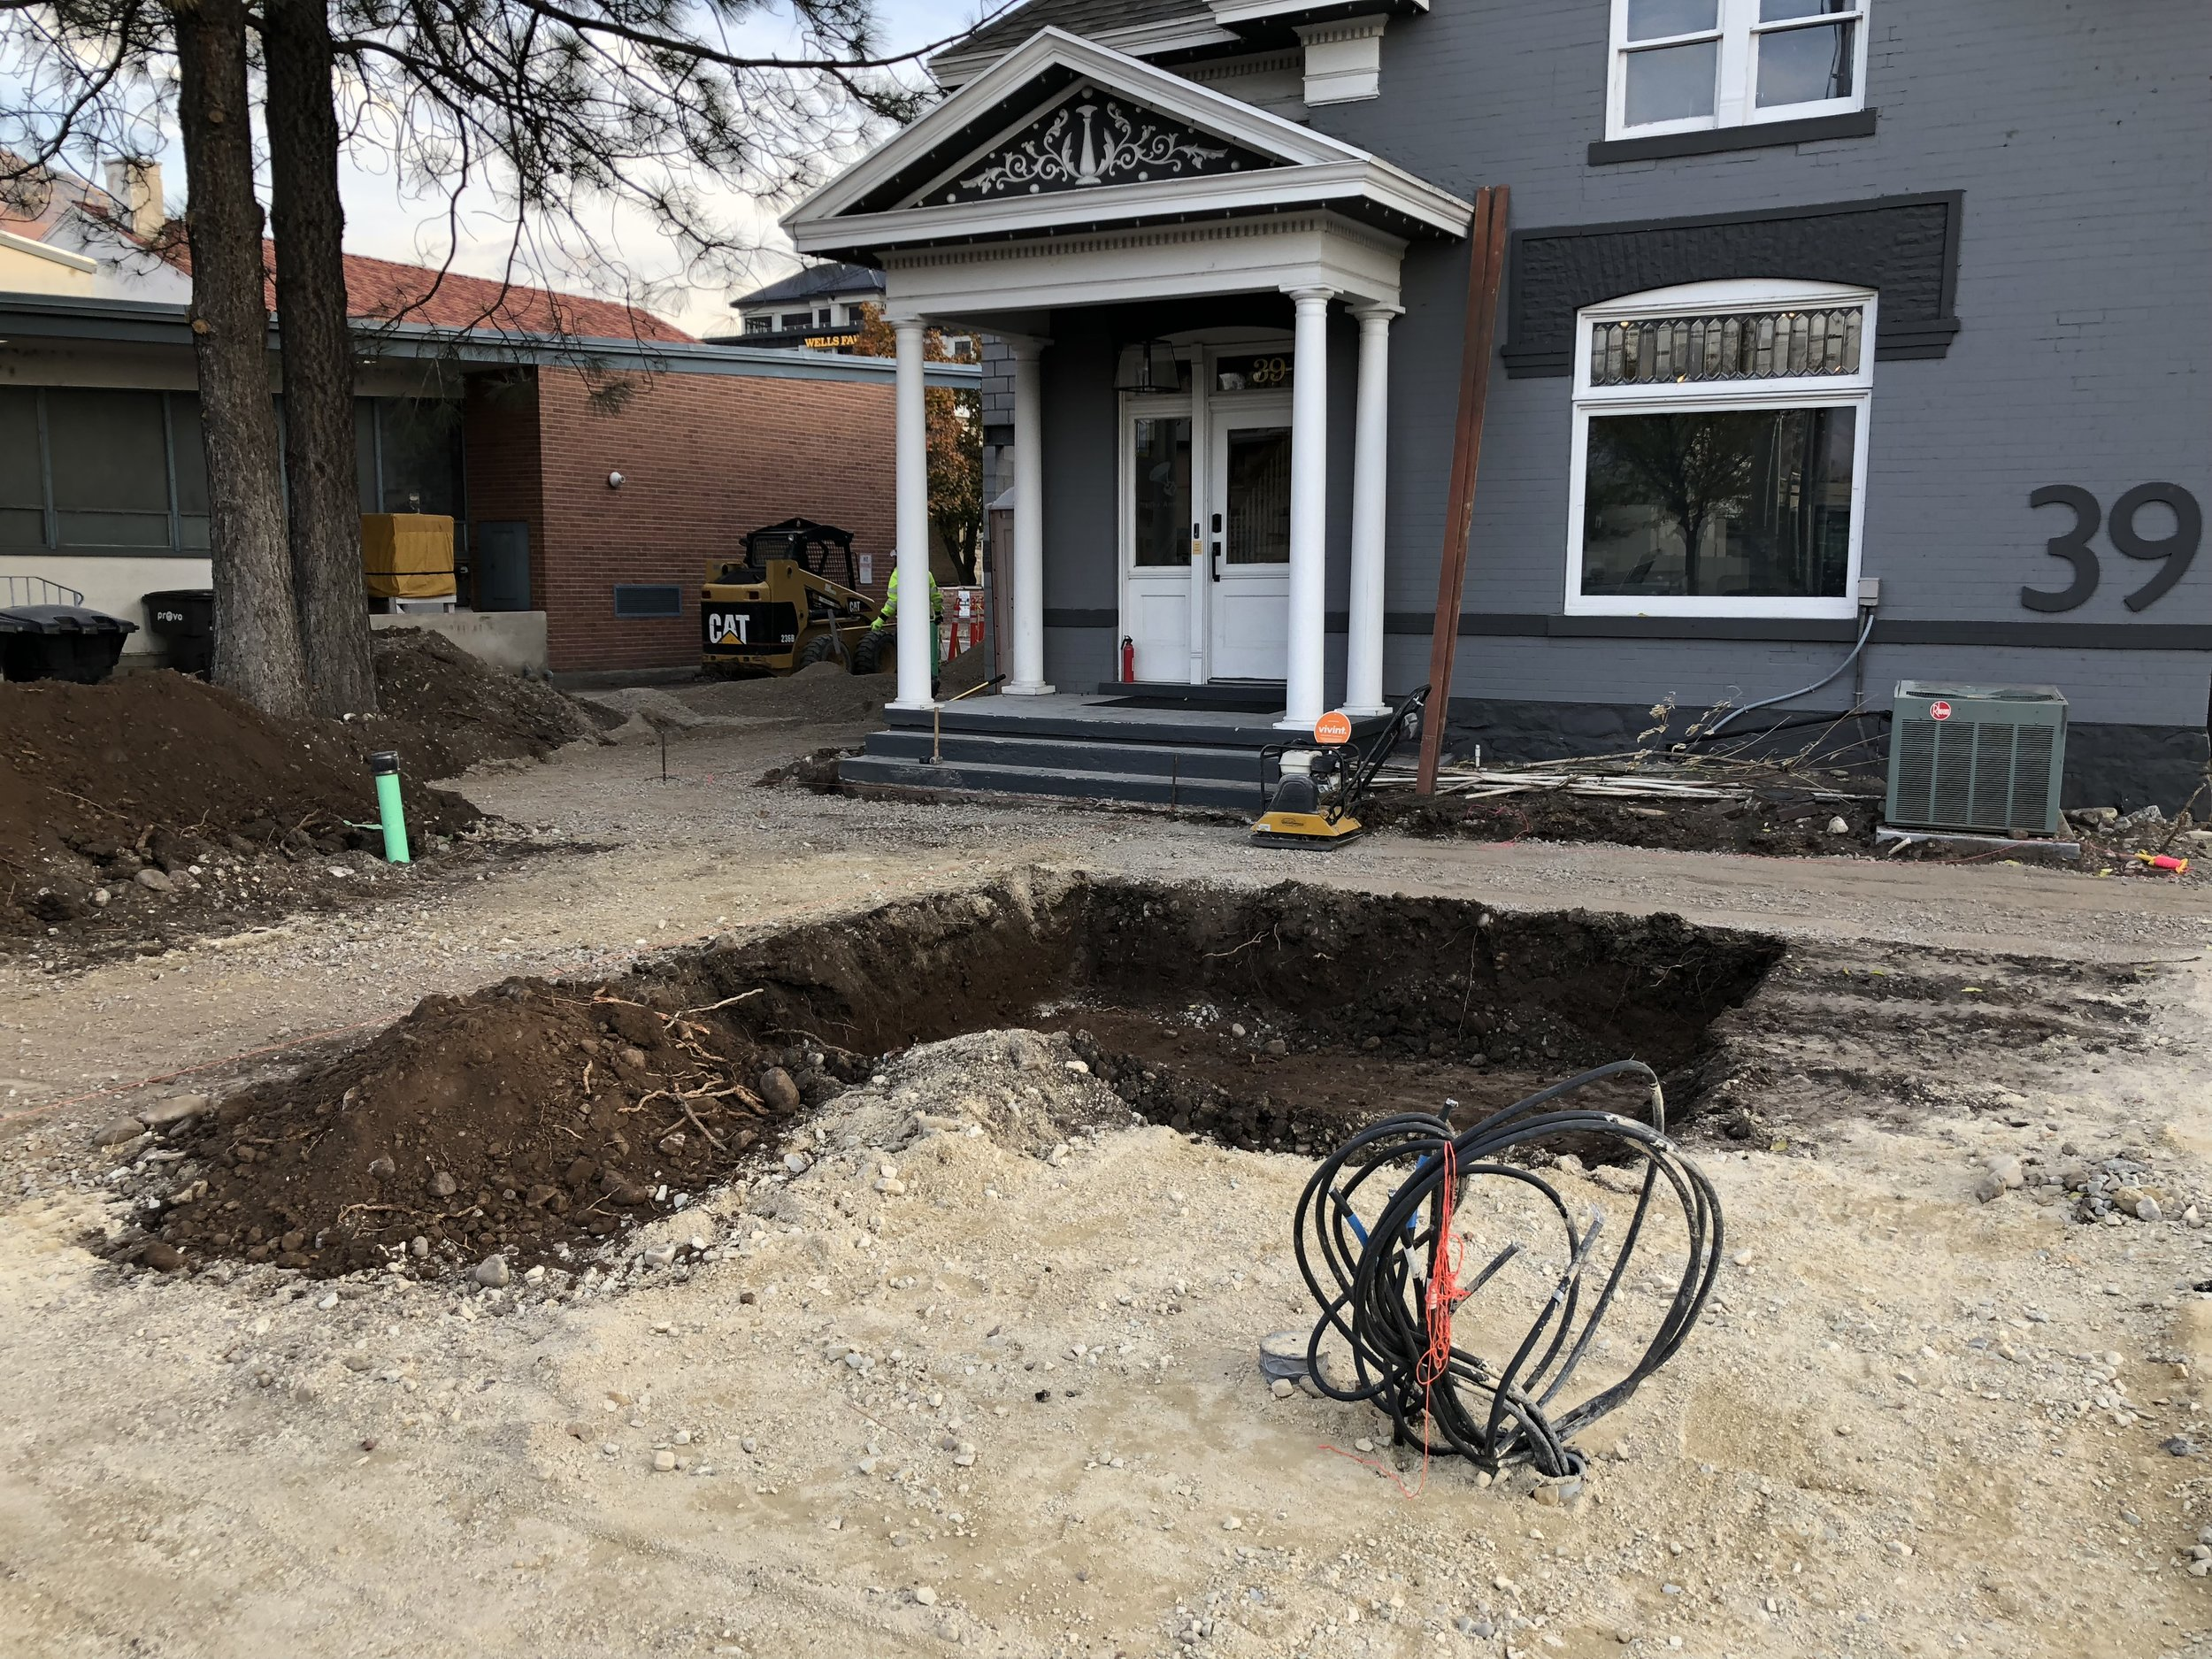 The cable coming out of the ground will feed the large transformer that the city requires. Behind you can see the beginnings of a fire pit / seating area we will be putting in the front yard.